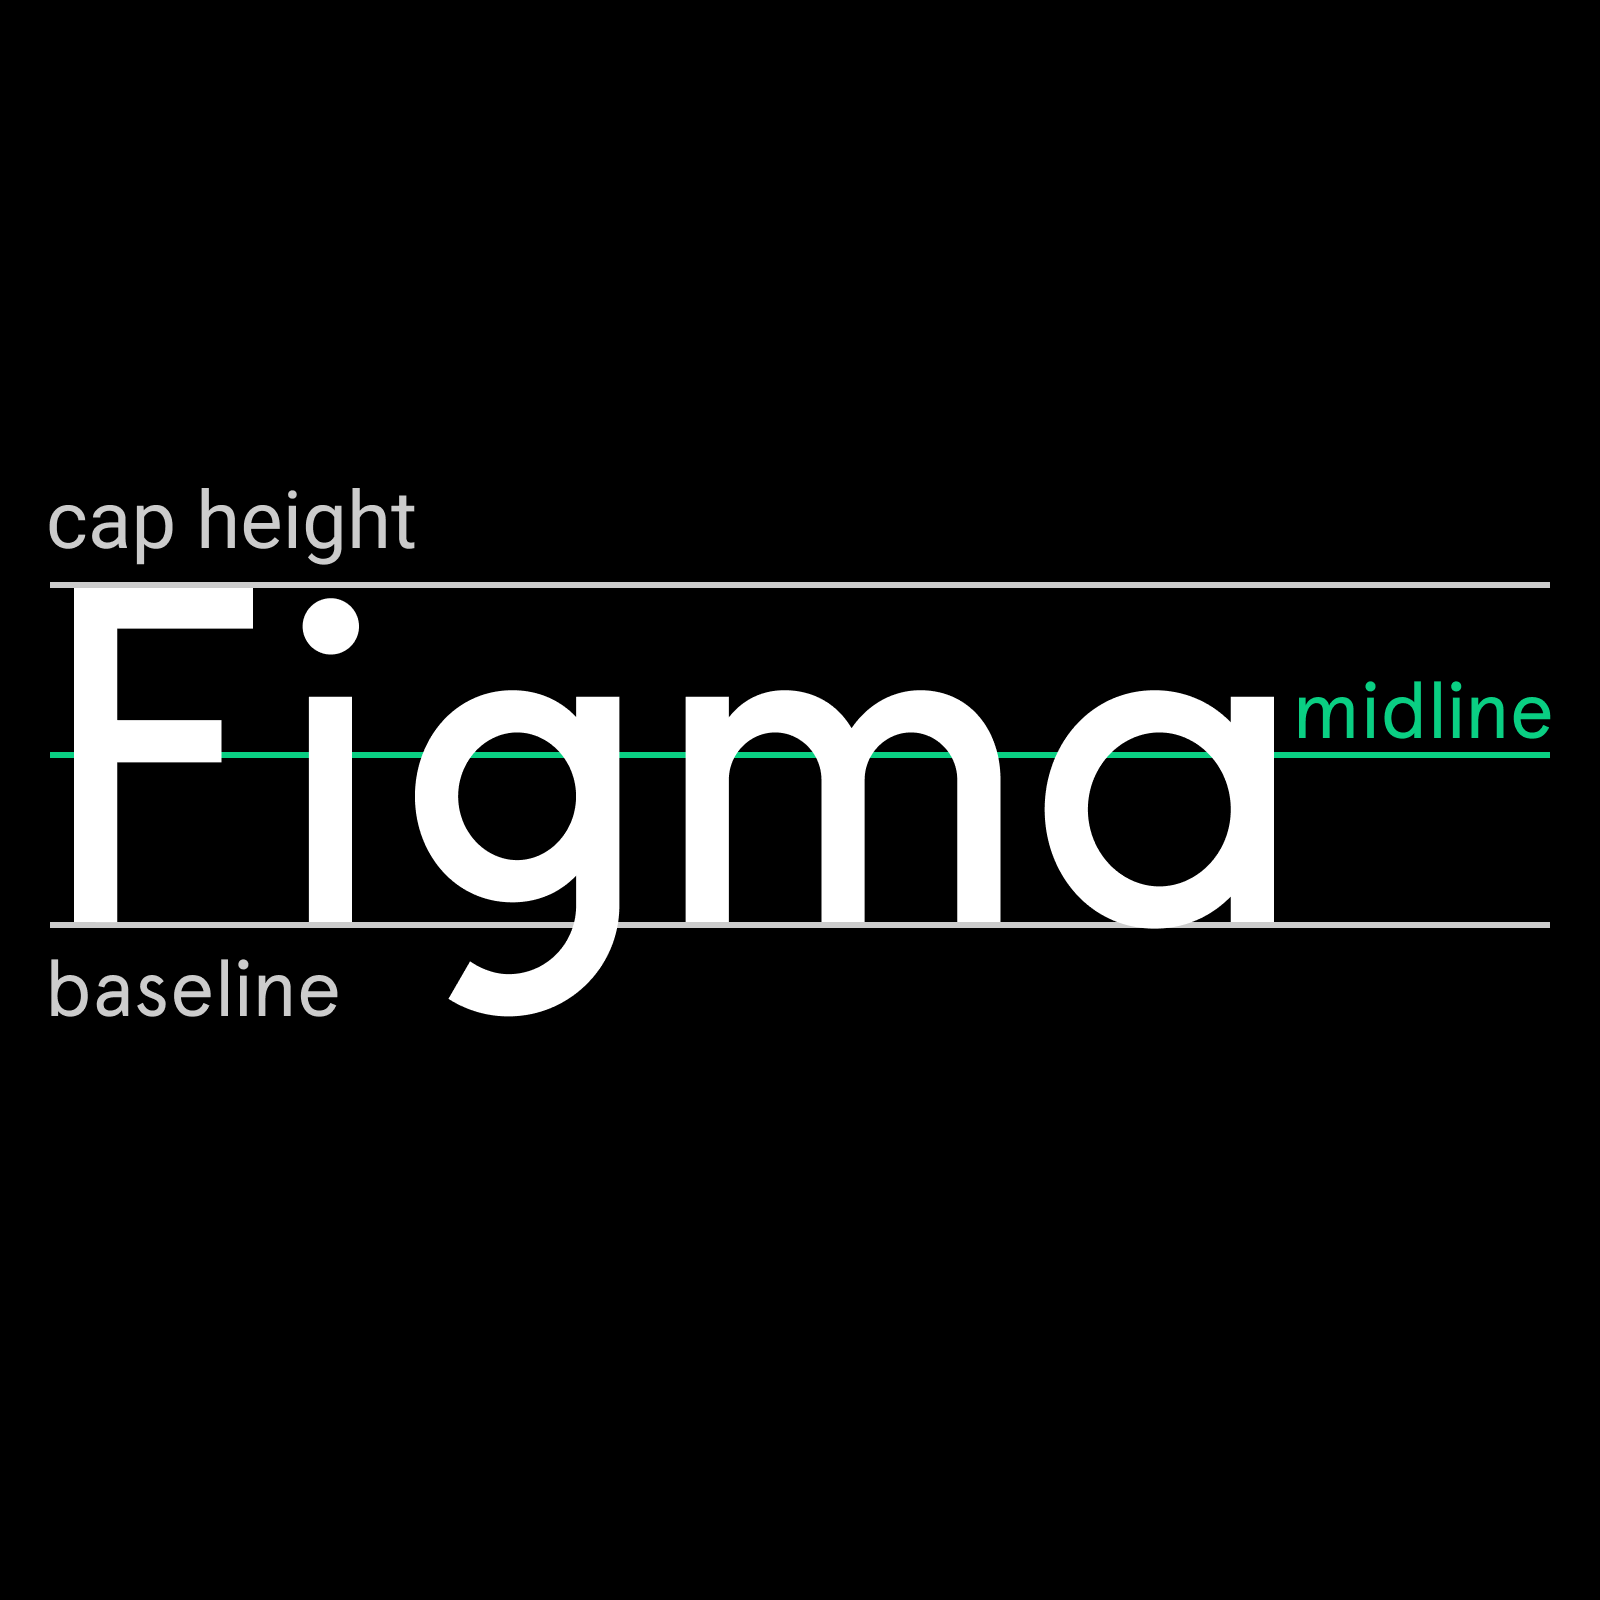 Design Dictionary from Figma